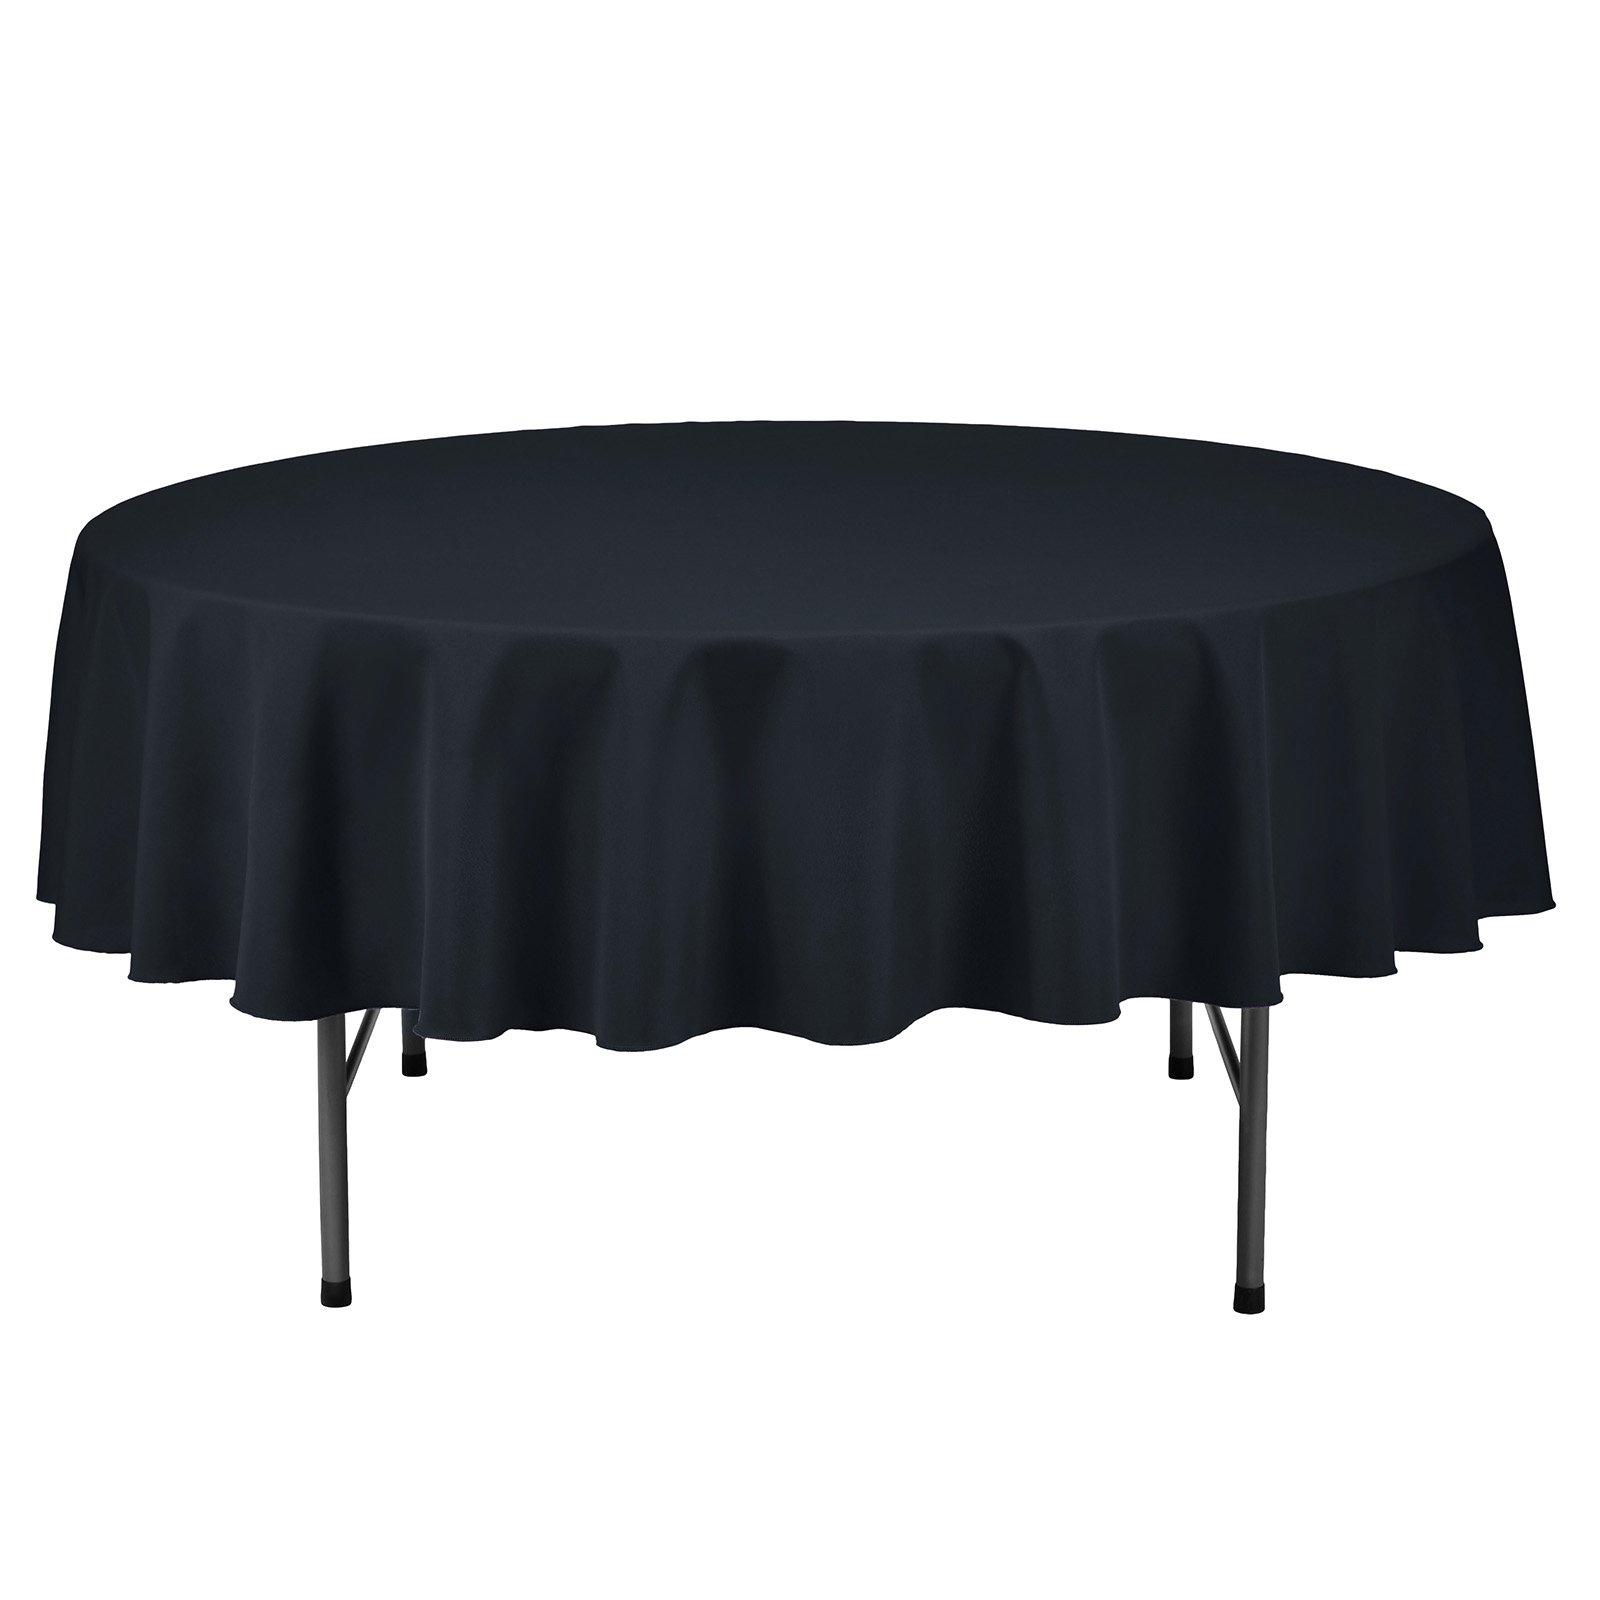 VEEYOO Tablecloth 90 inch Round Solid Polyester Table Cloth for Wedding Restaurant Party Kitchen Dining Table Christmas, Navy by VEEYOO (Image #1)